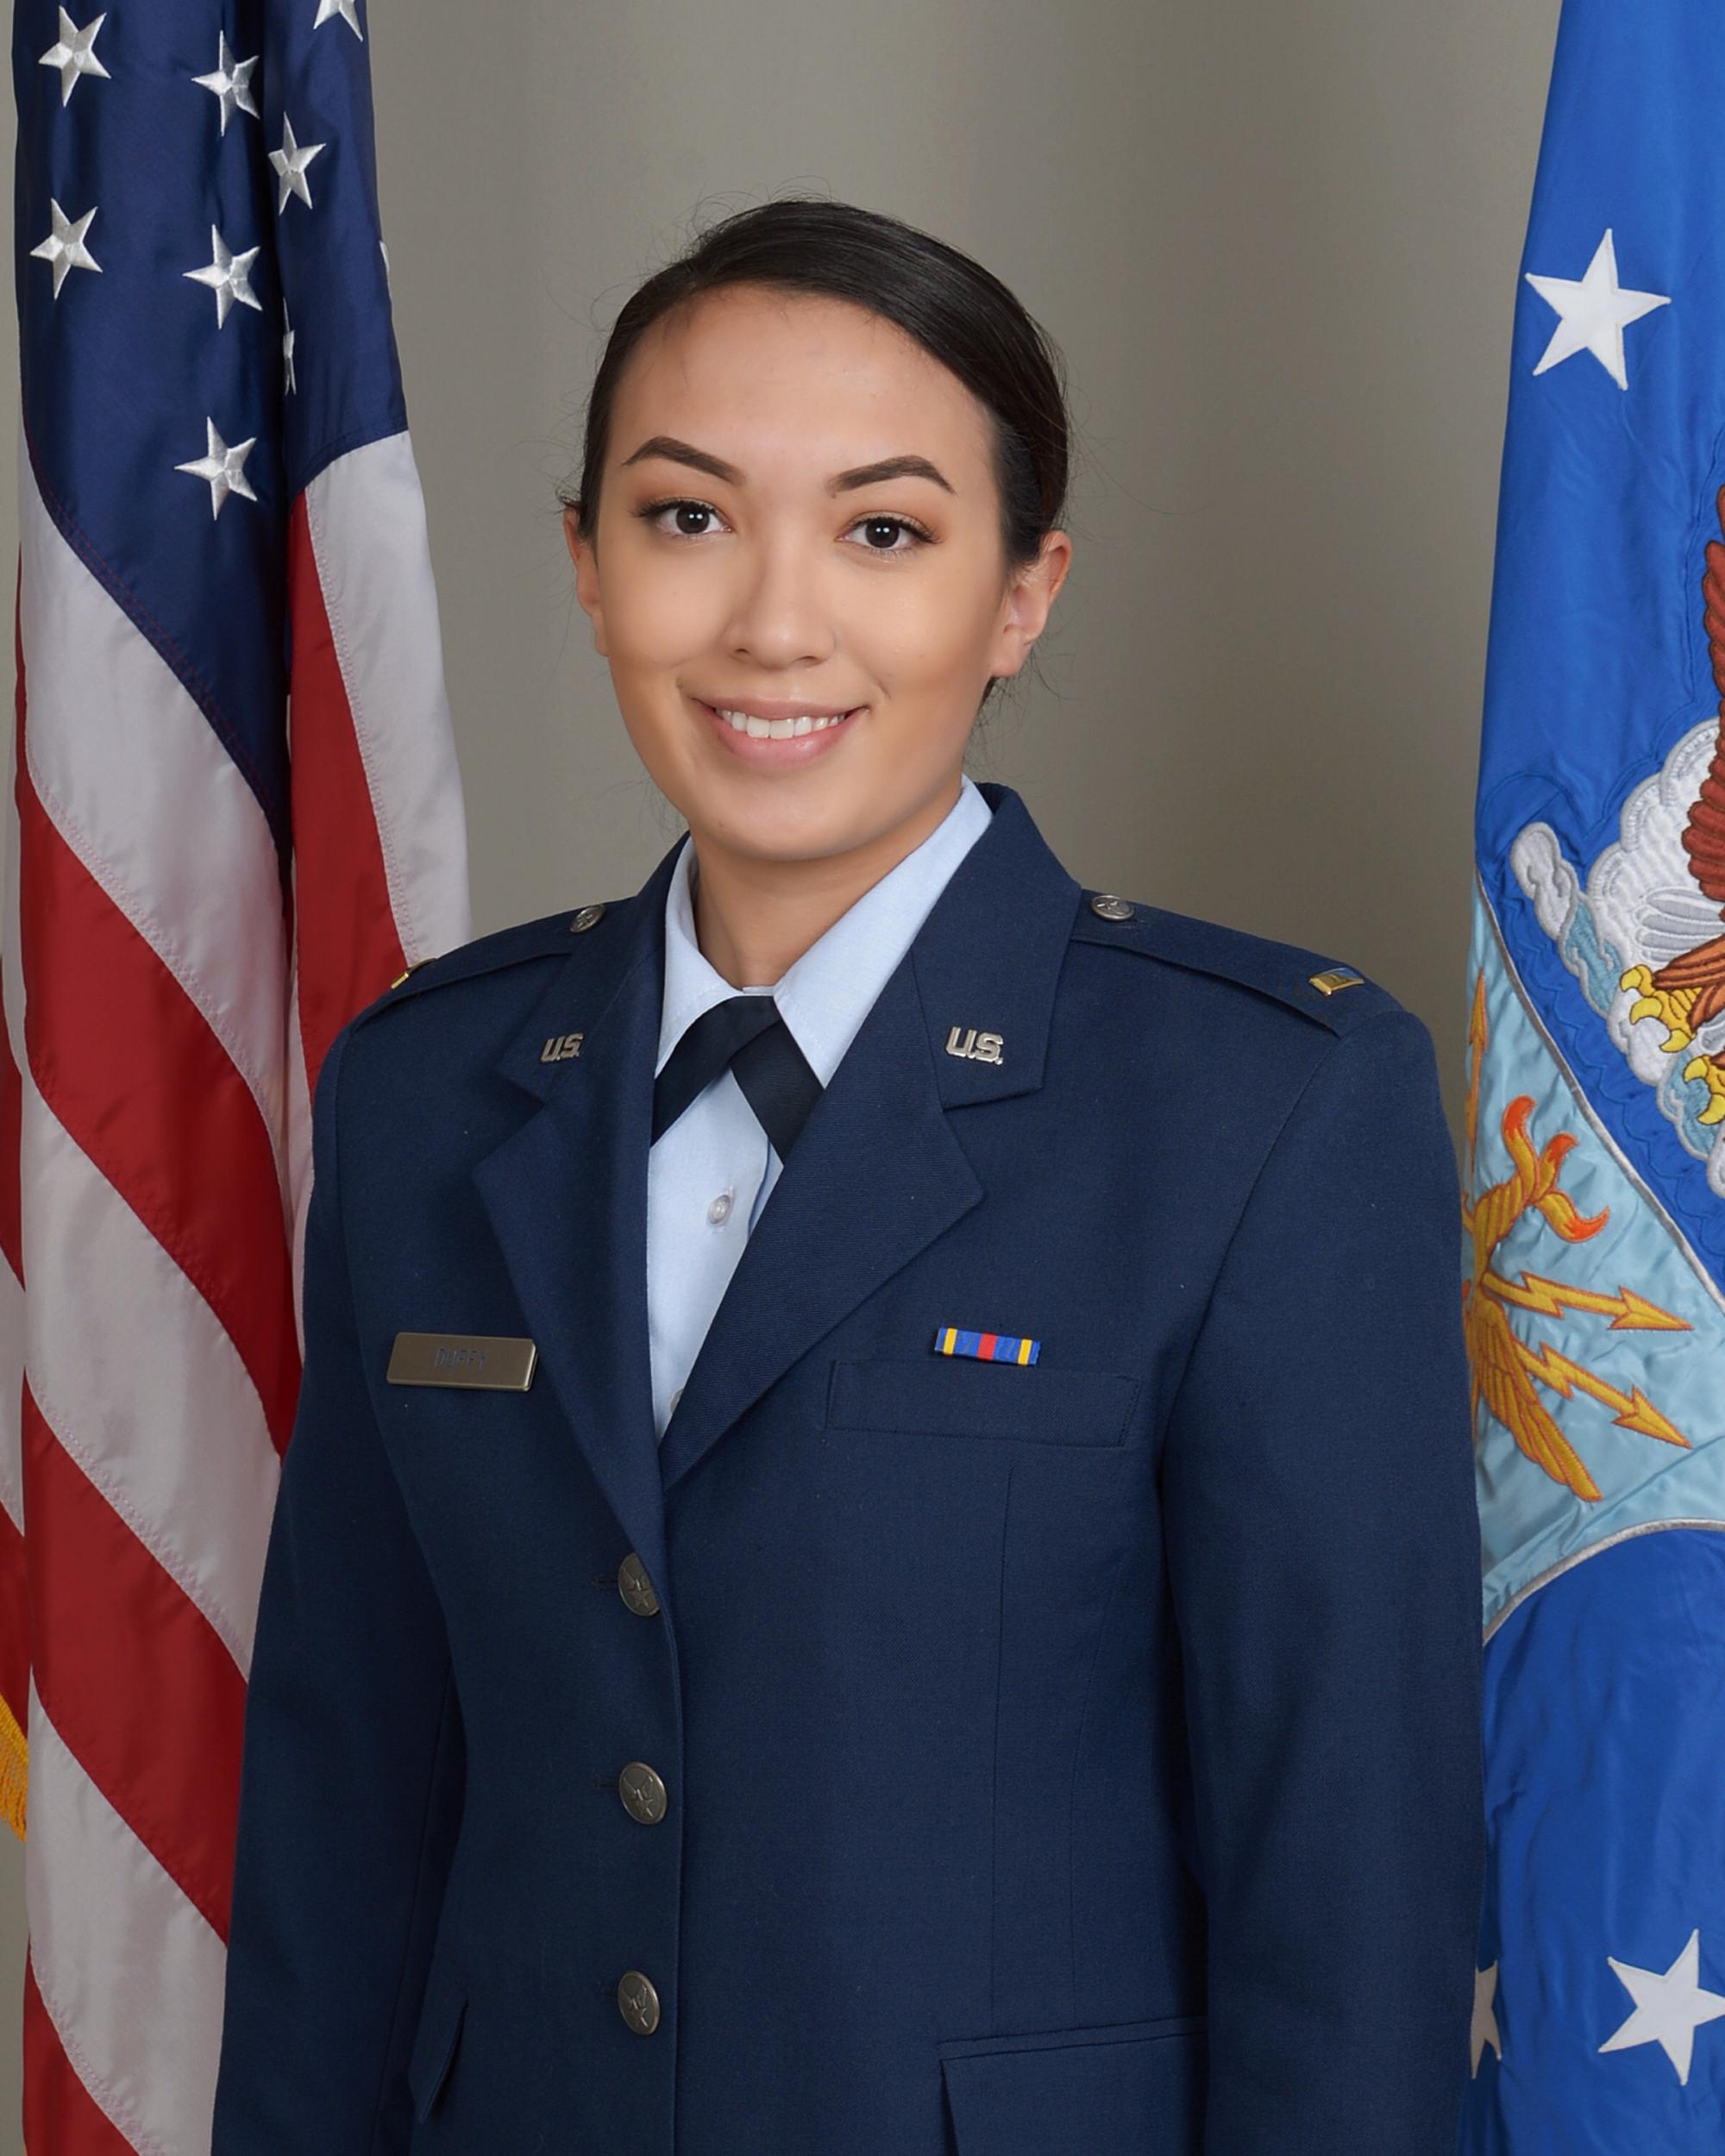 UA alumna Maria Miller will soon be working as a logistics readiness officer at Aviano Air Force Base in Aviano, Italy.